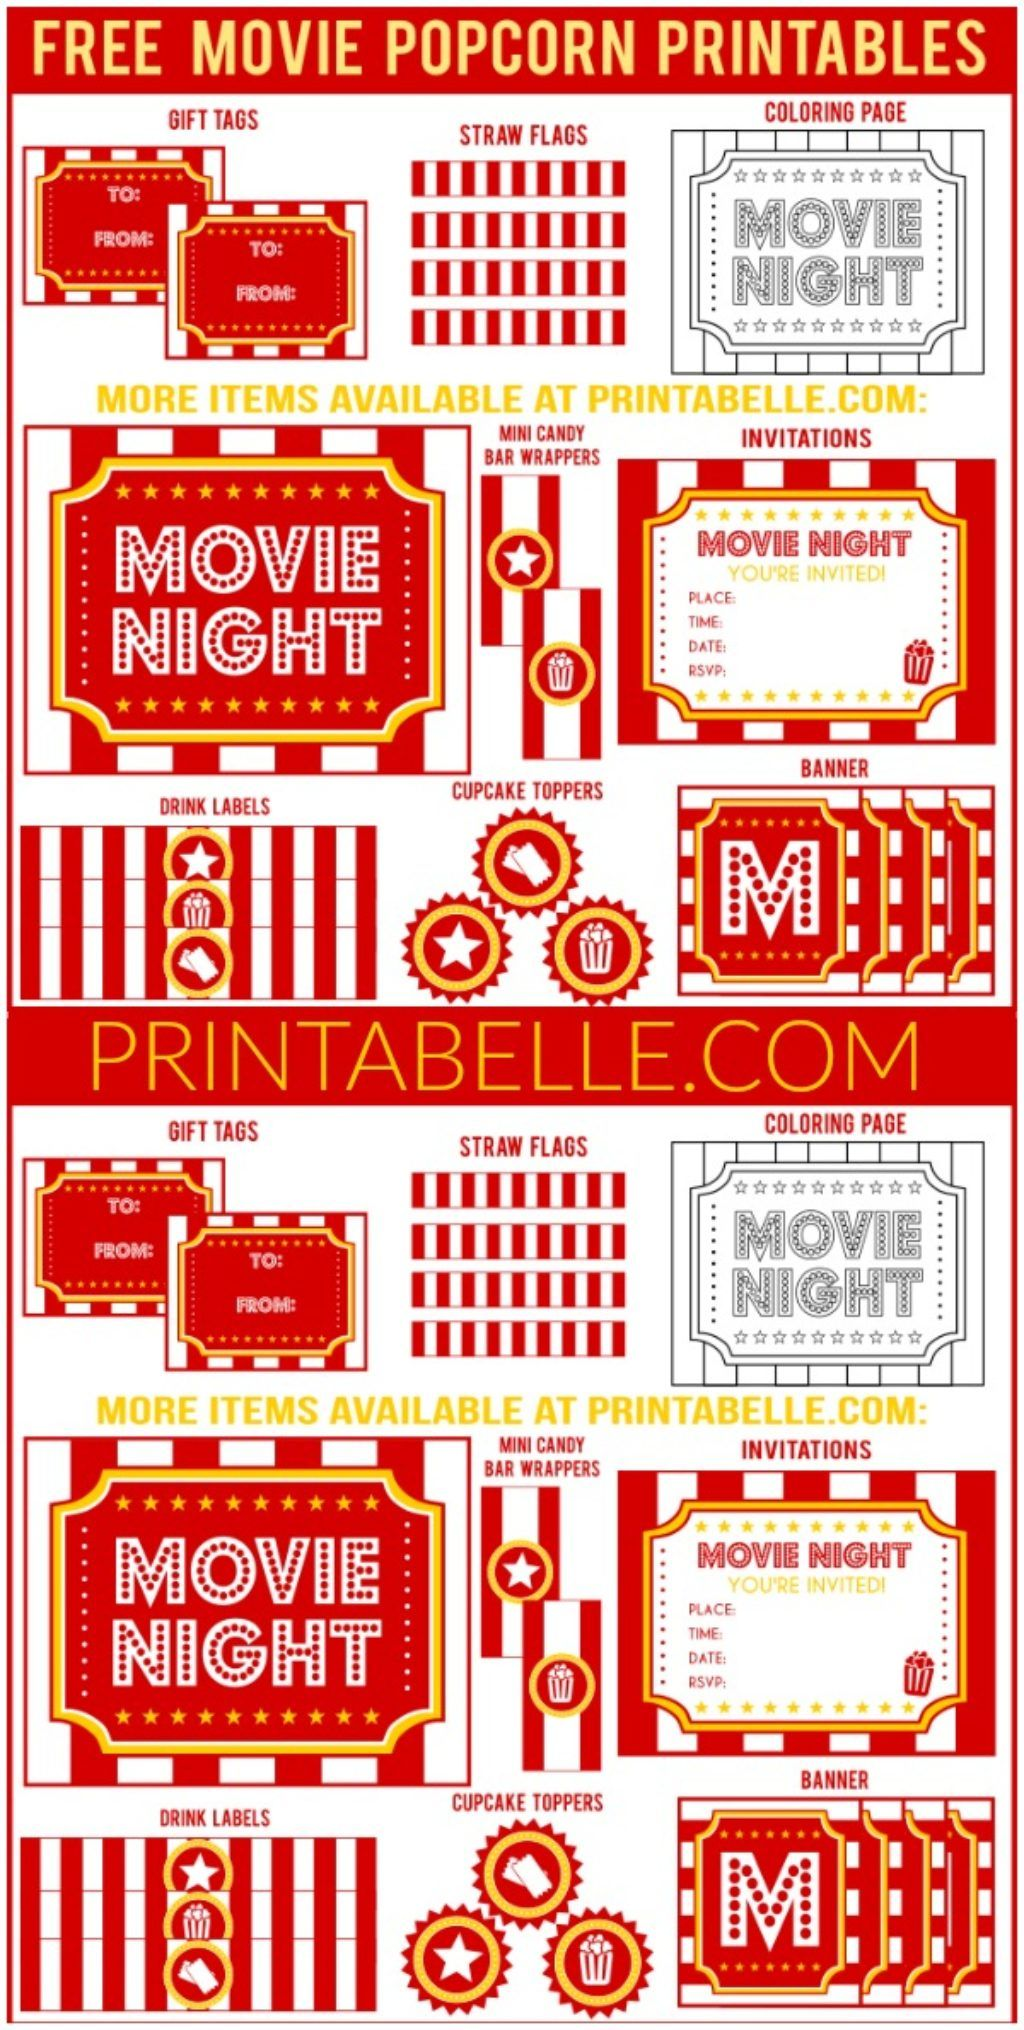 Movie Night Popcorn Printables